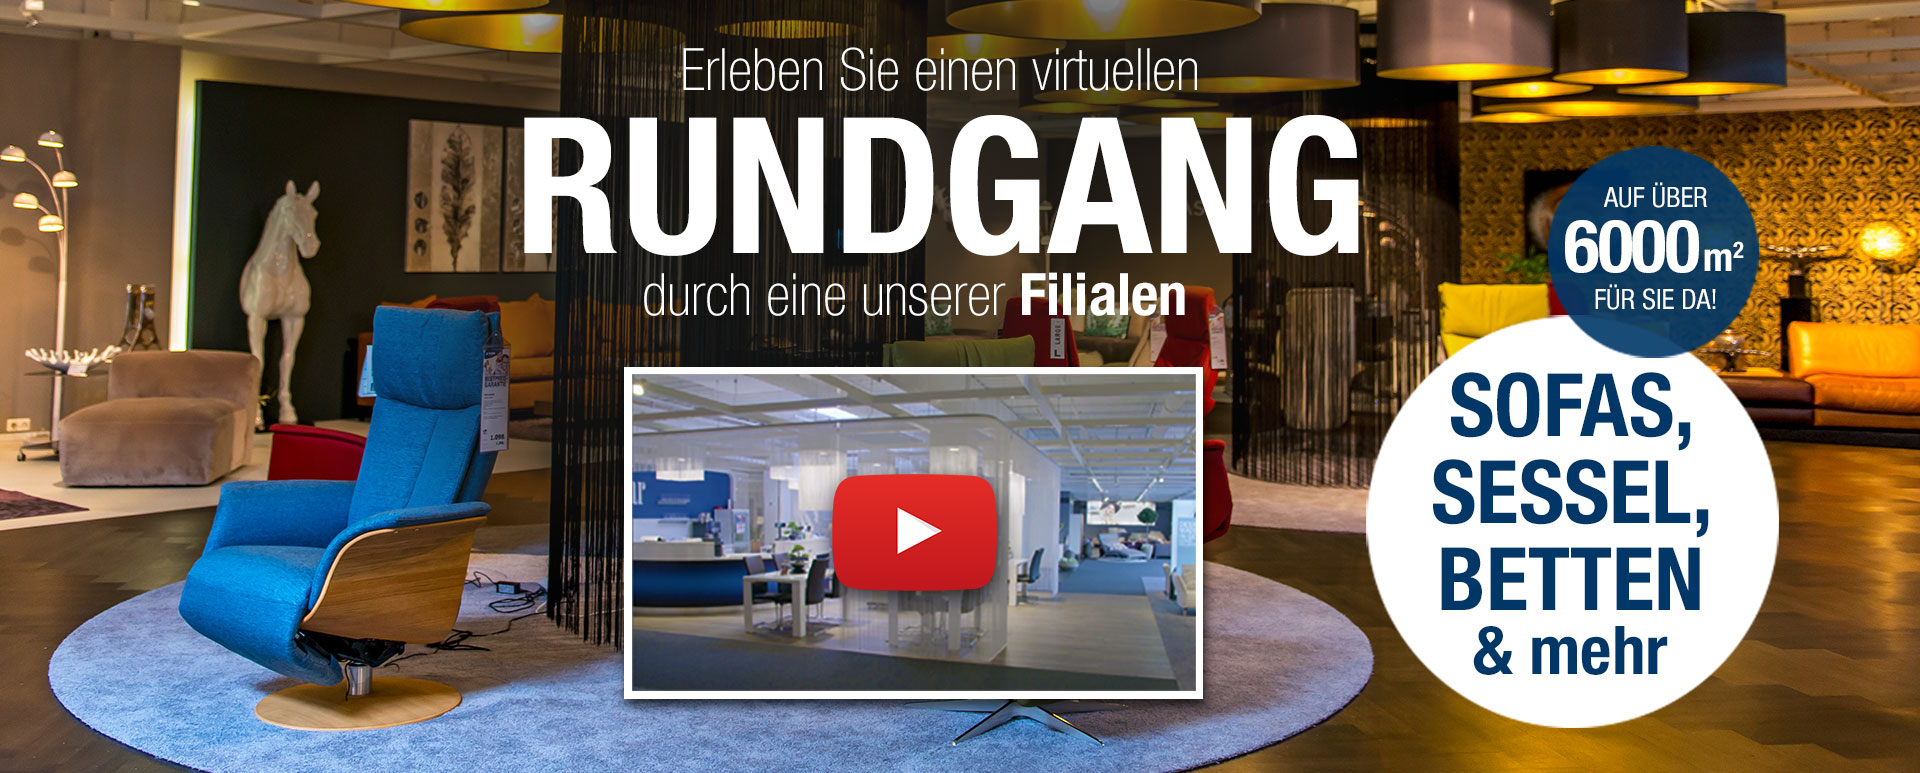 rundgang filiale bremen video kabs polsterwelt. Black Bedroom Furniture Sets. Home Design Ideas